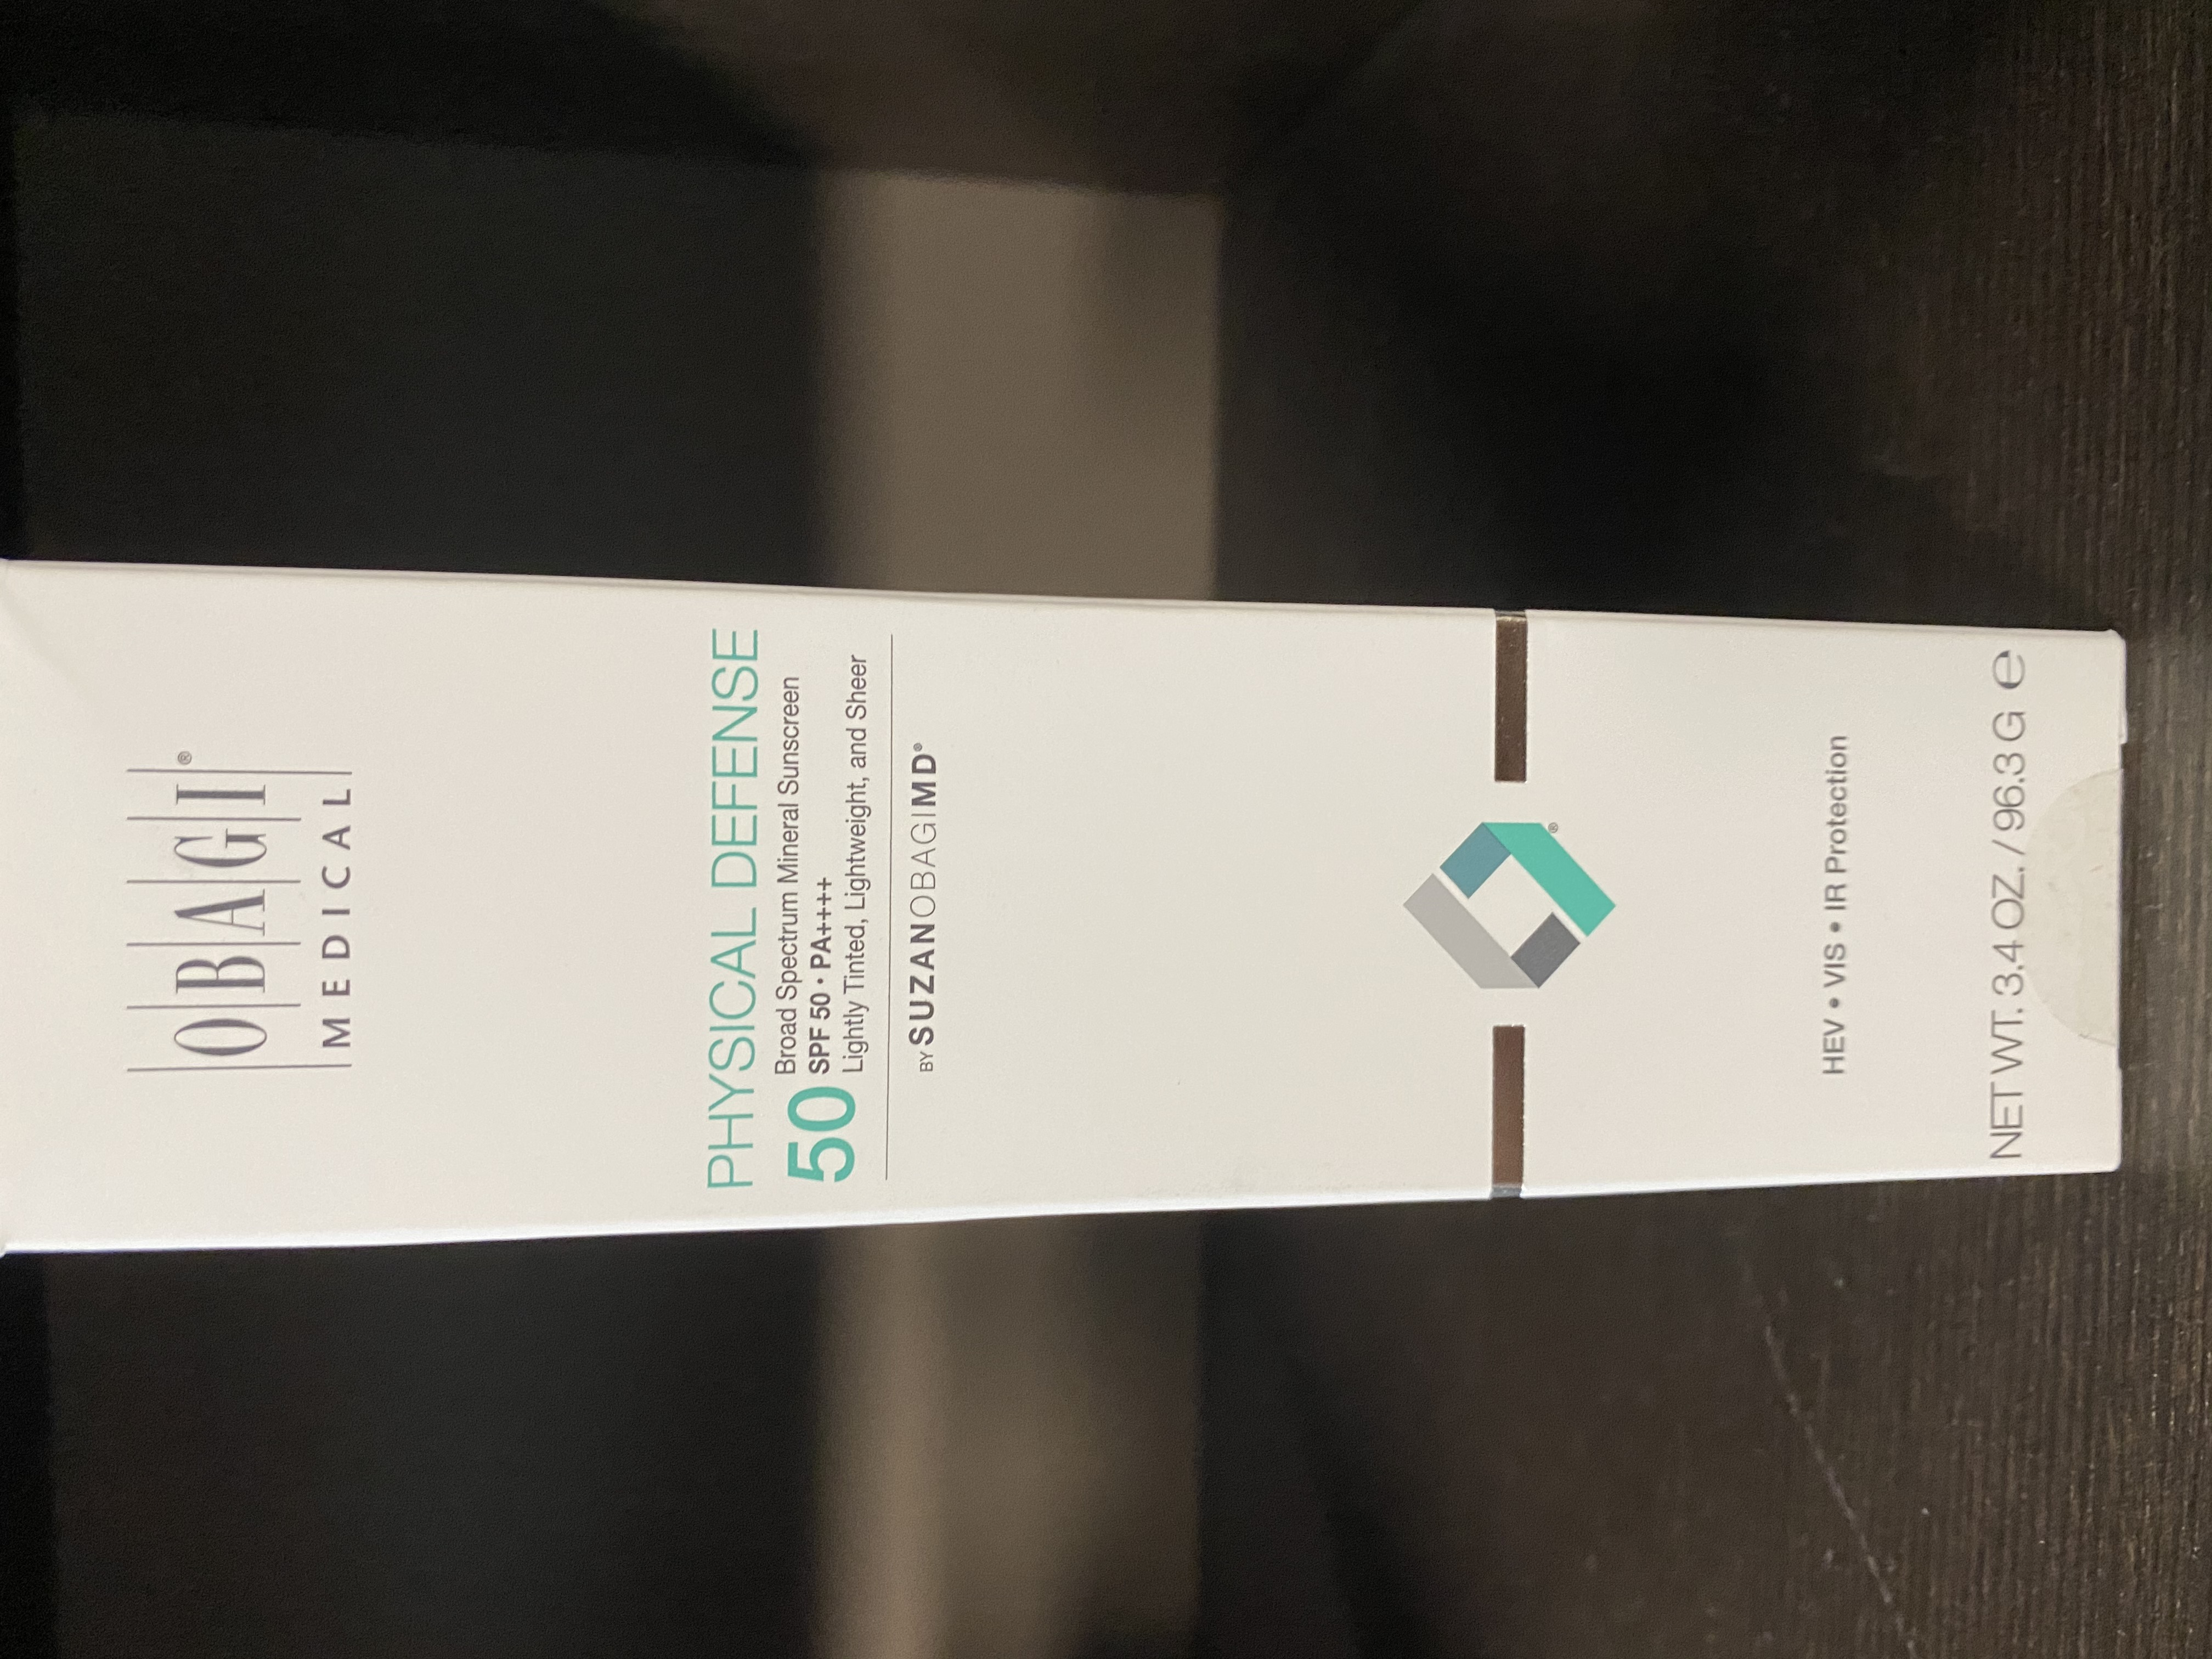 CELLEX-C Sun Care SPF 50+ 4 oz